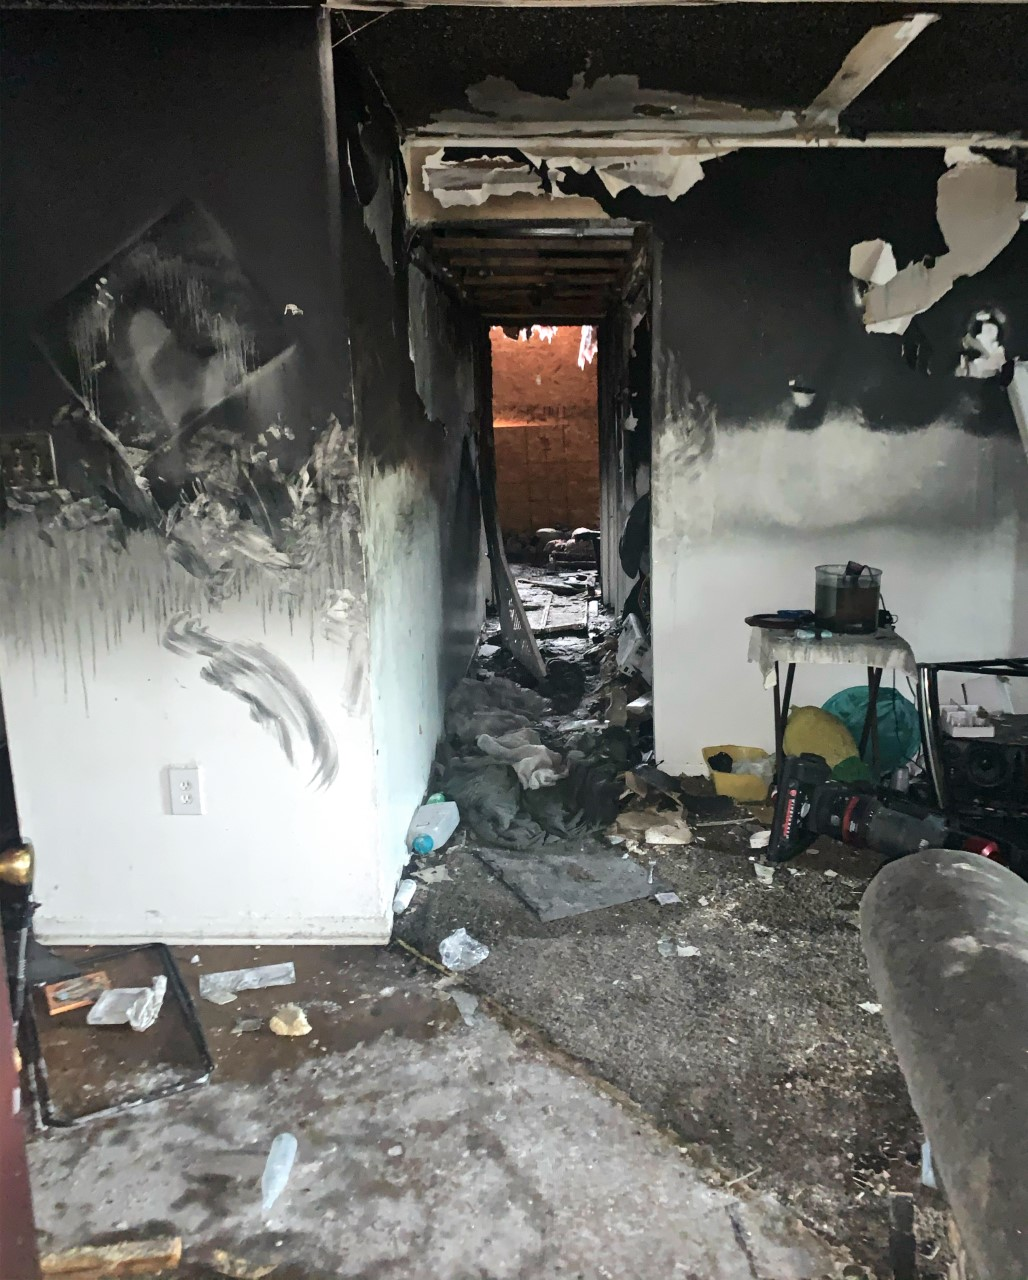 Fire victims, including 17 children, say they're facing homelessness two weeks since apartment blaze